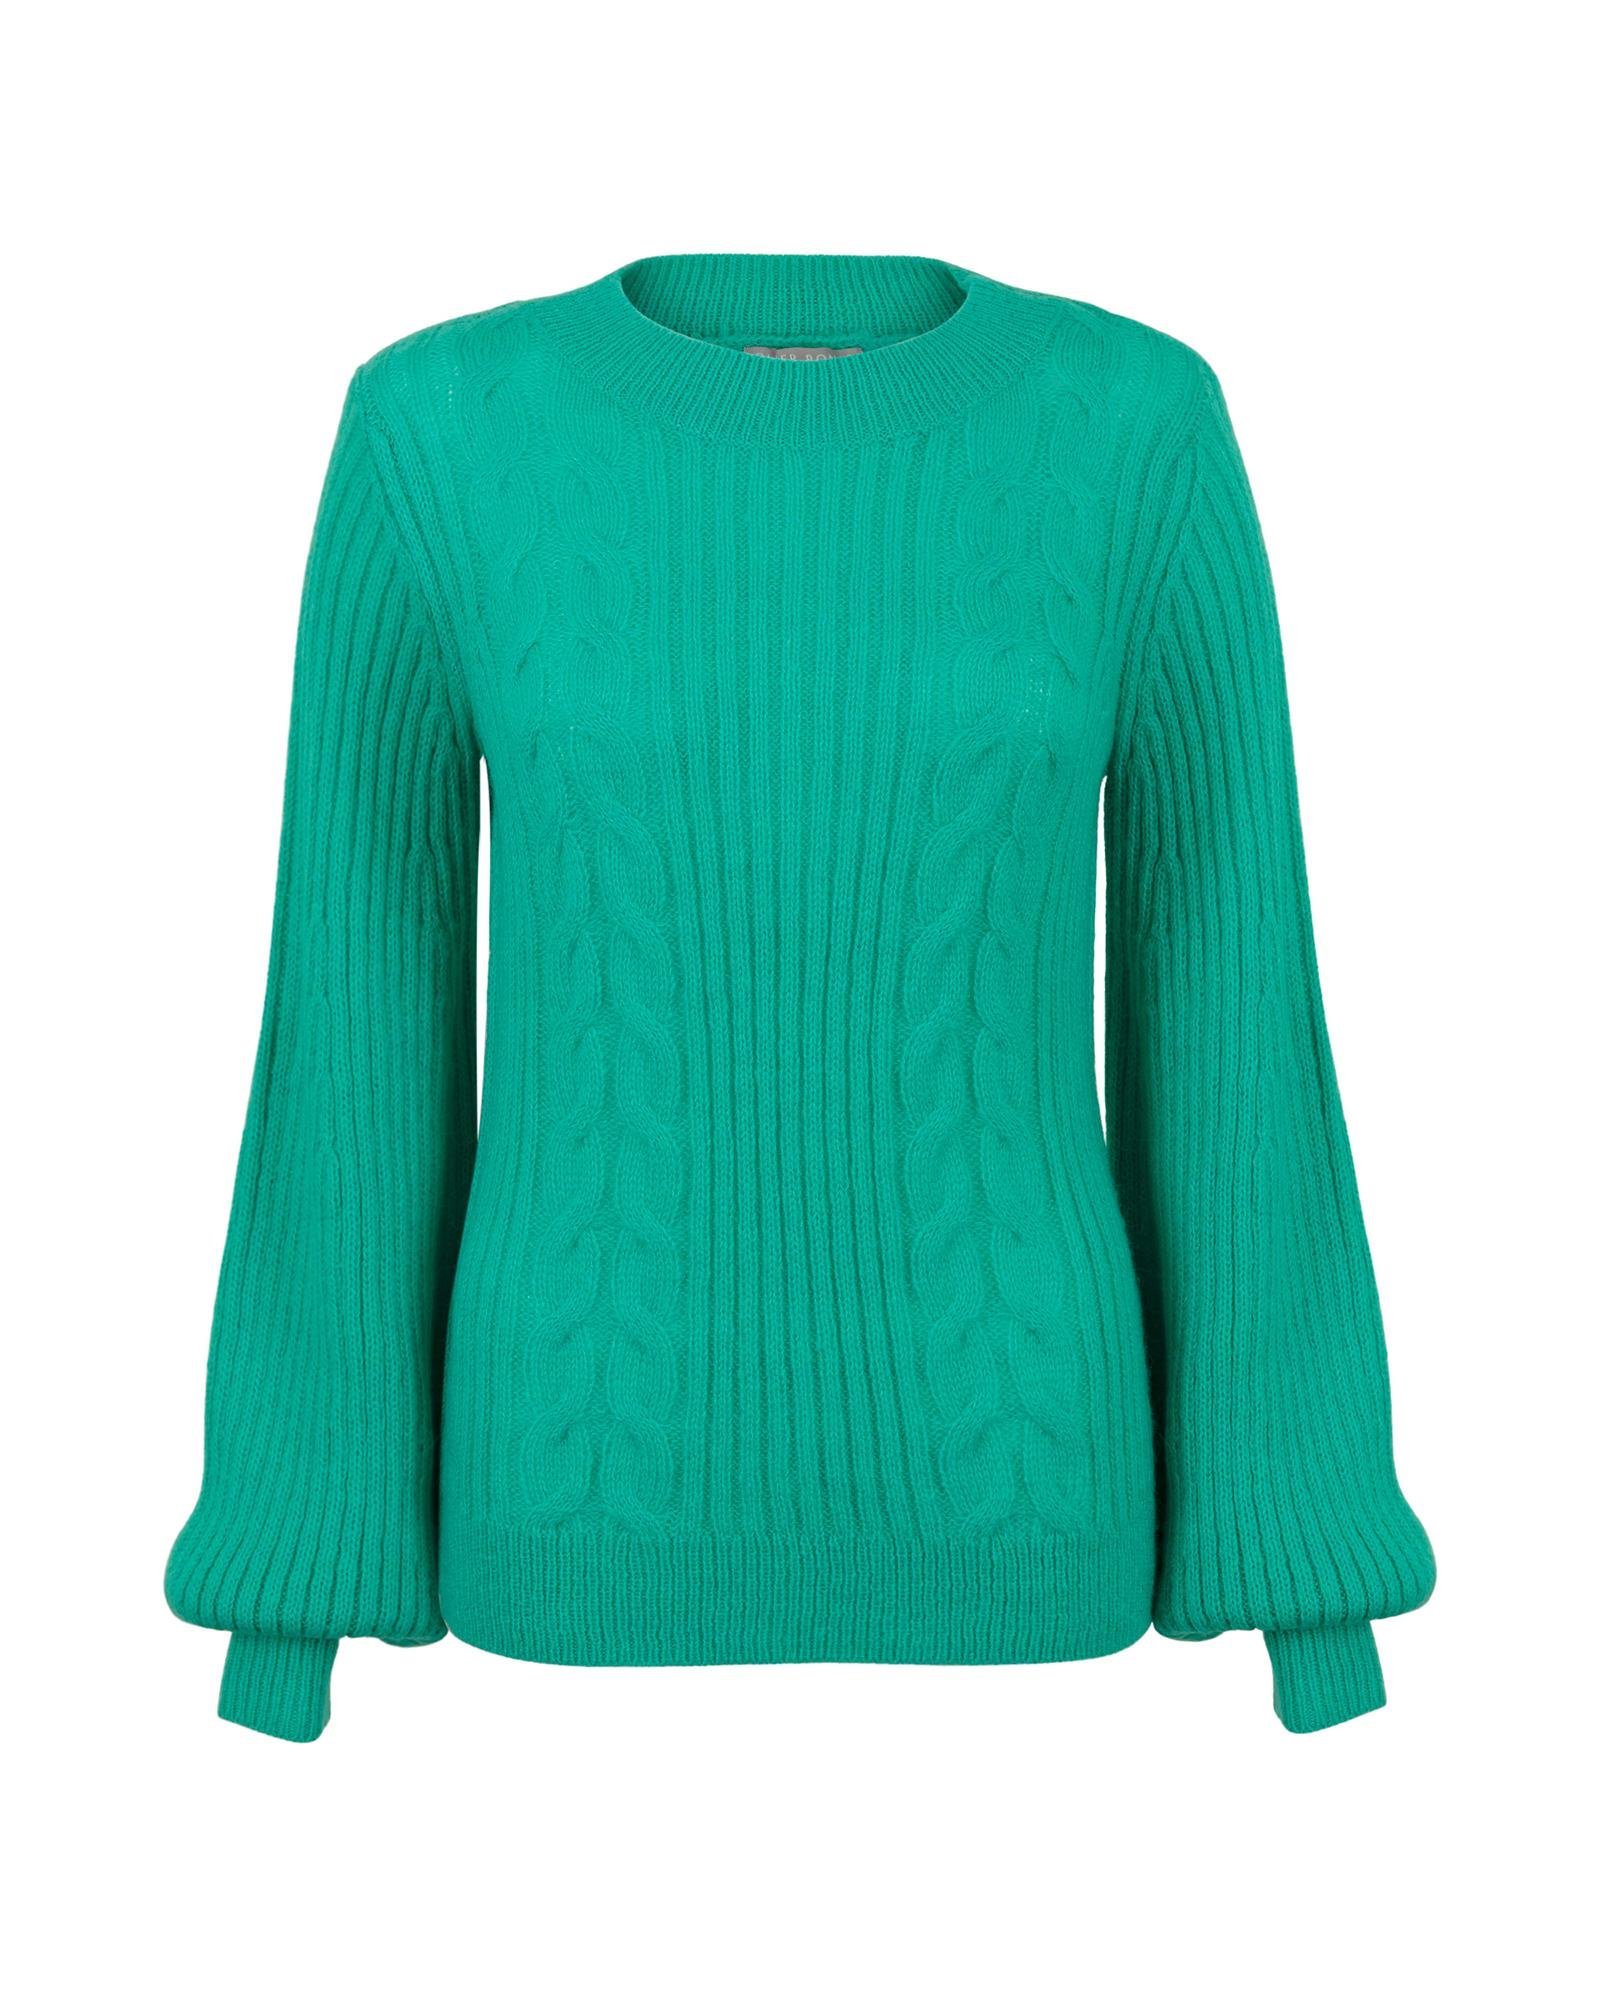 0c12a6e853 Lyst - Oliver Bonas Works Green Cable Knit Sweater in Green